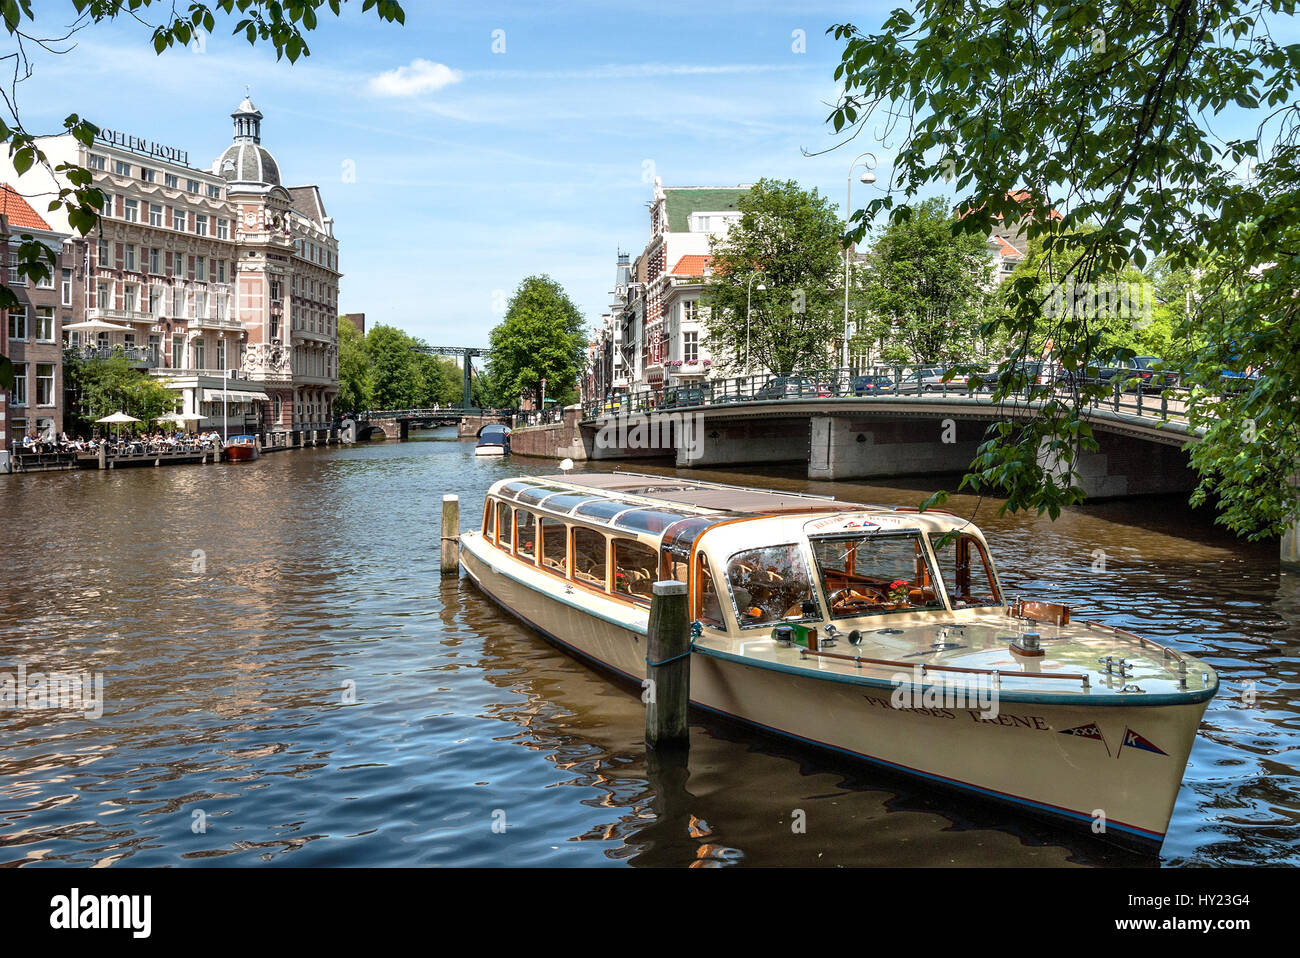 Sightseeing boat driving in a water channel in the inner city of Amsterdam, Holland. Stock Photo